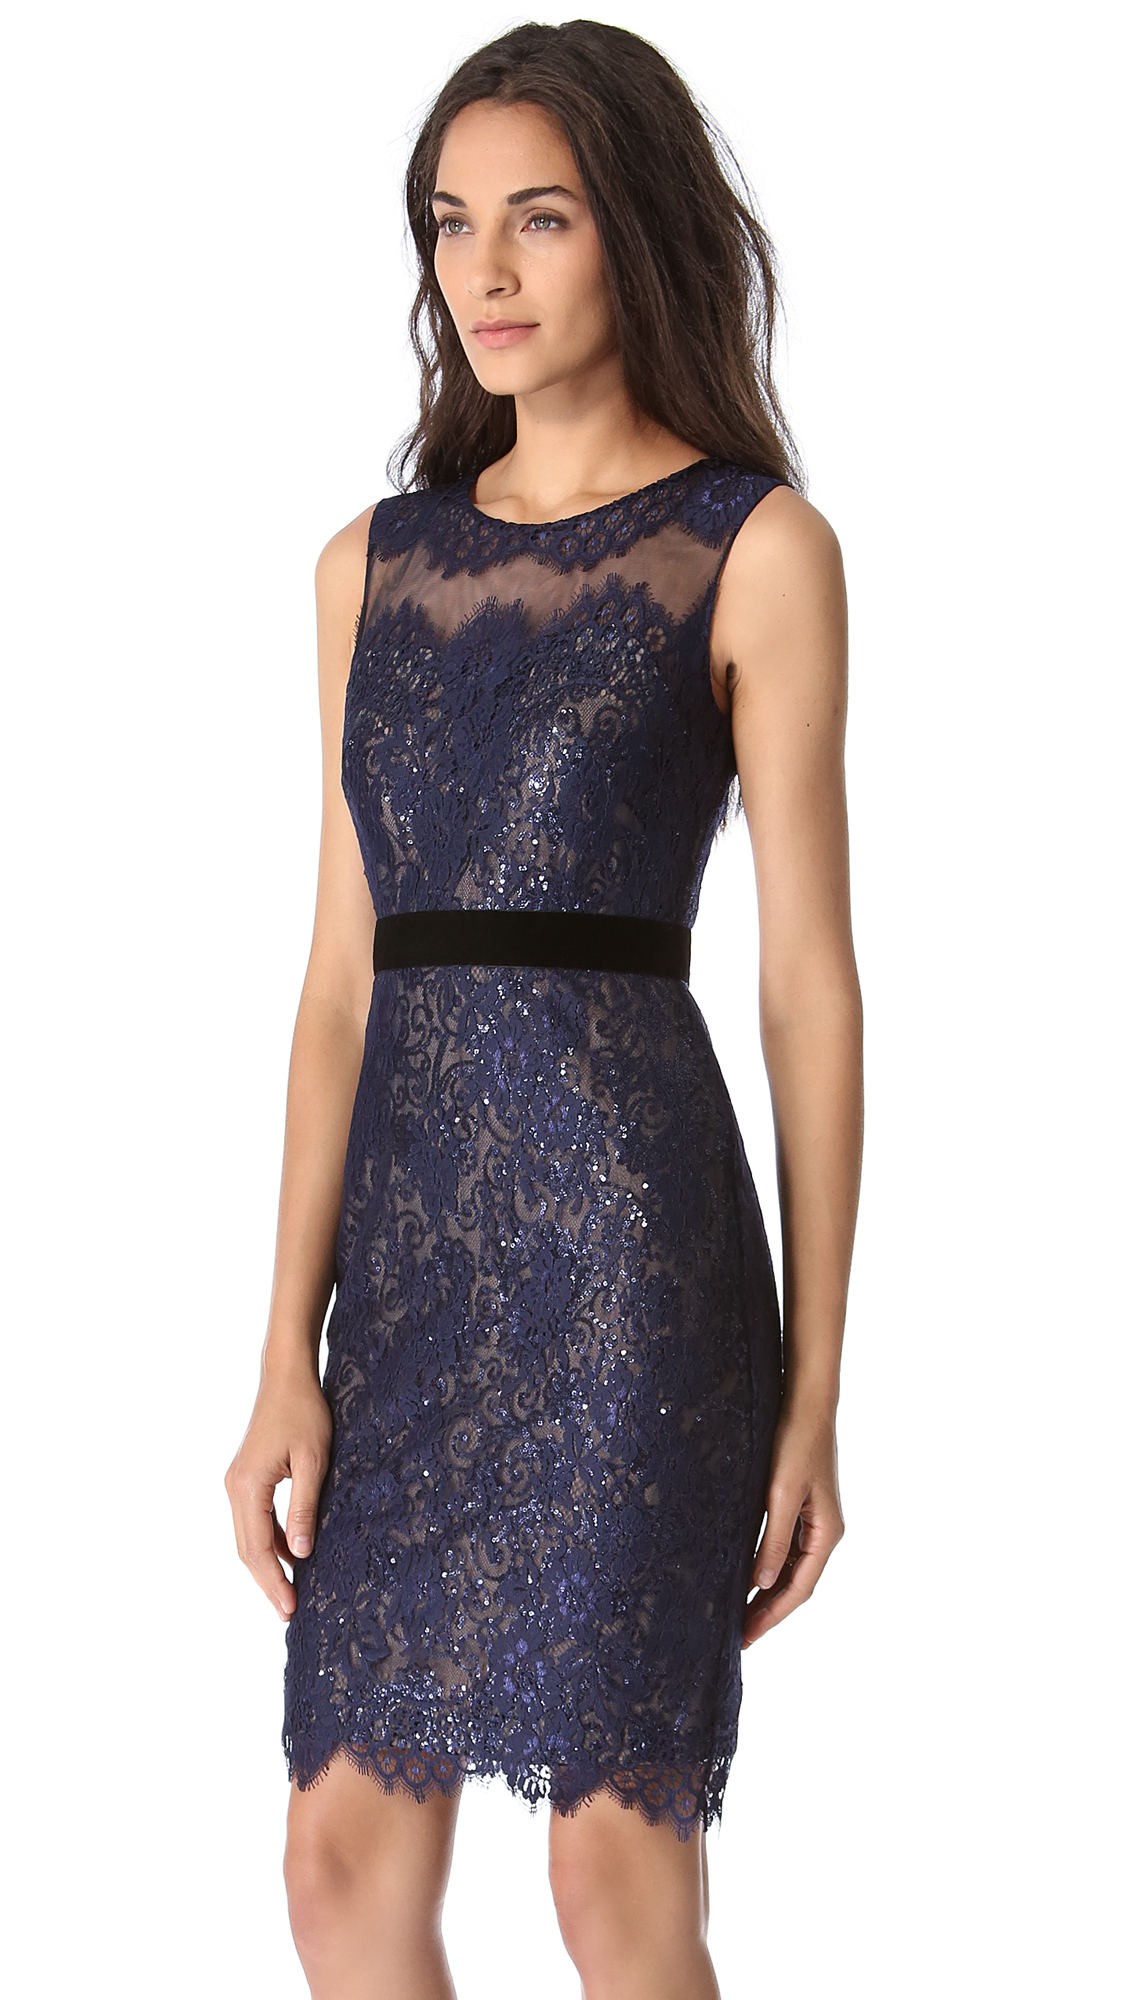 Lyst - Notte By Marchesa Lace Dress with Sequin Layer in Blue